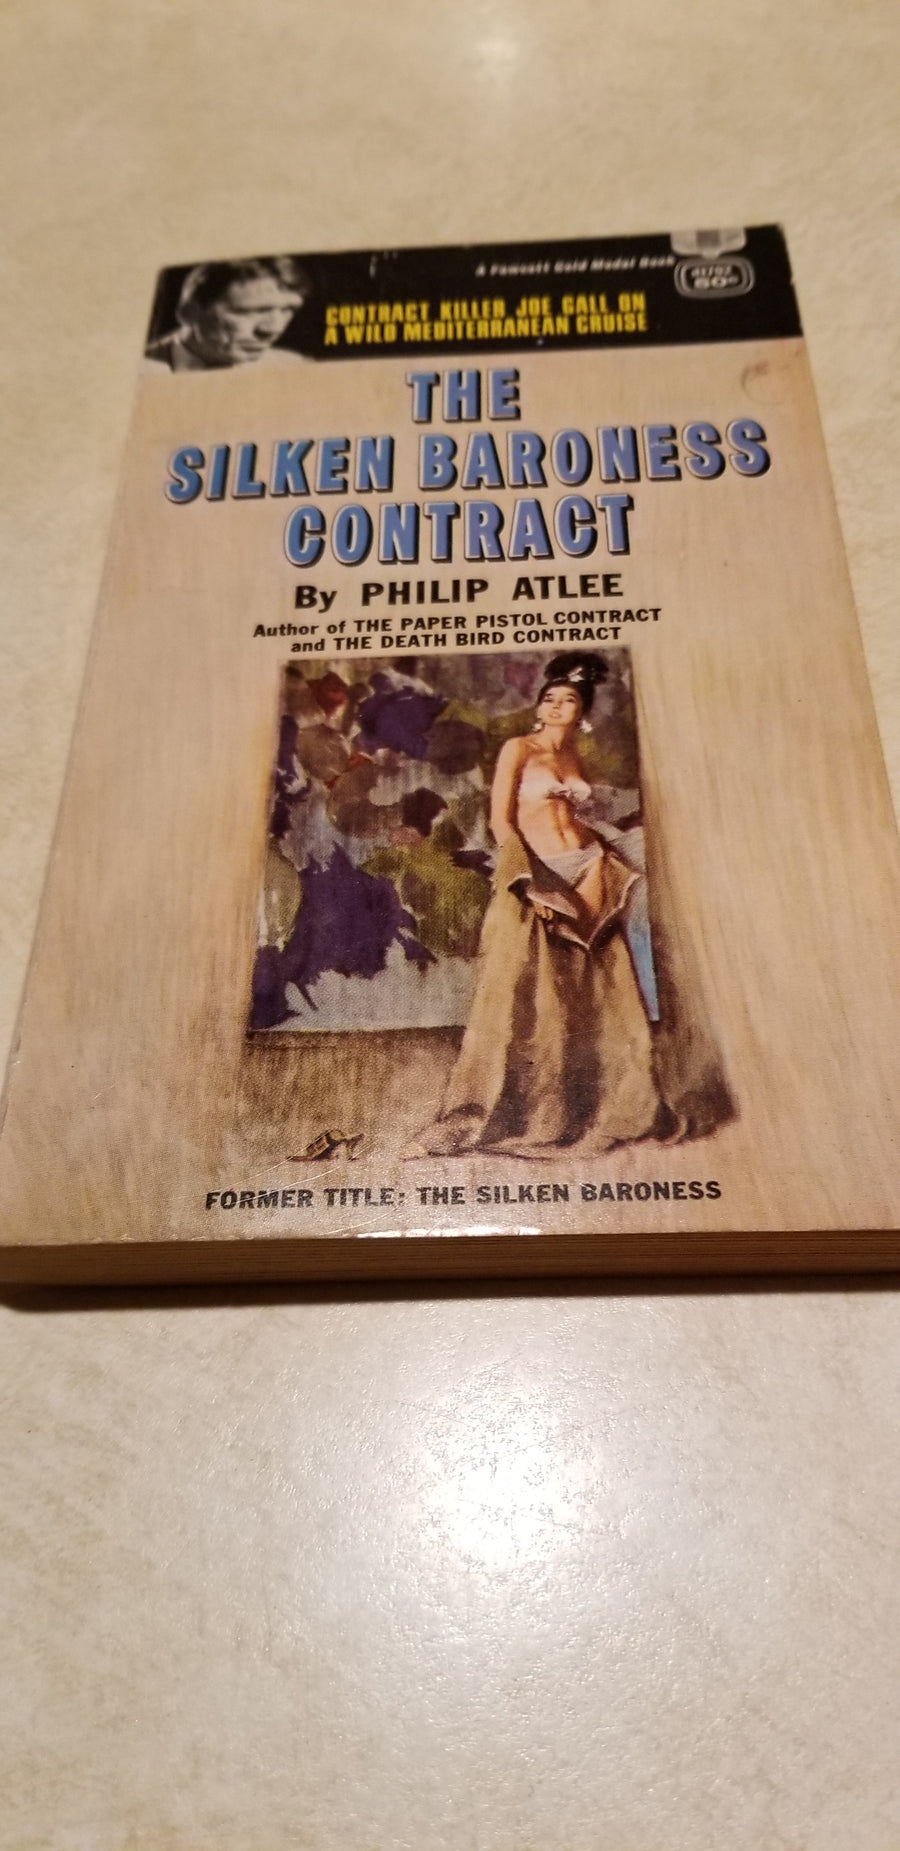 The silken baroness contract, 1964, paperback